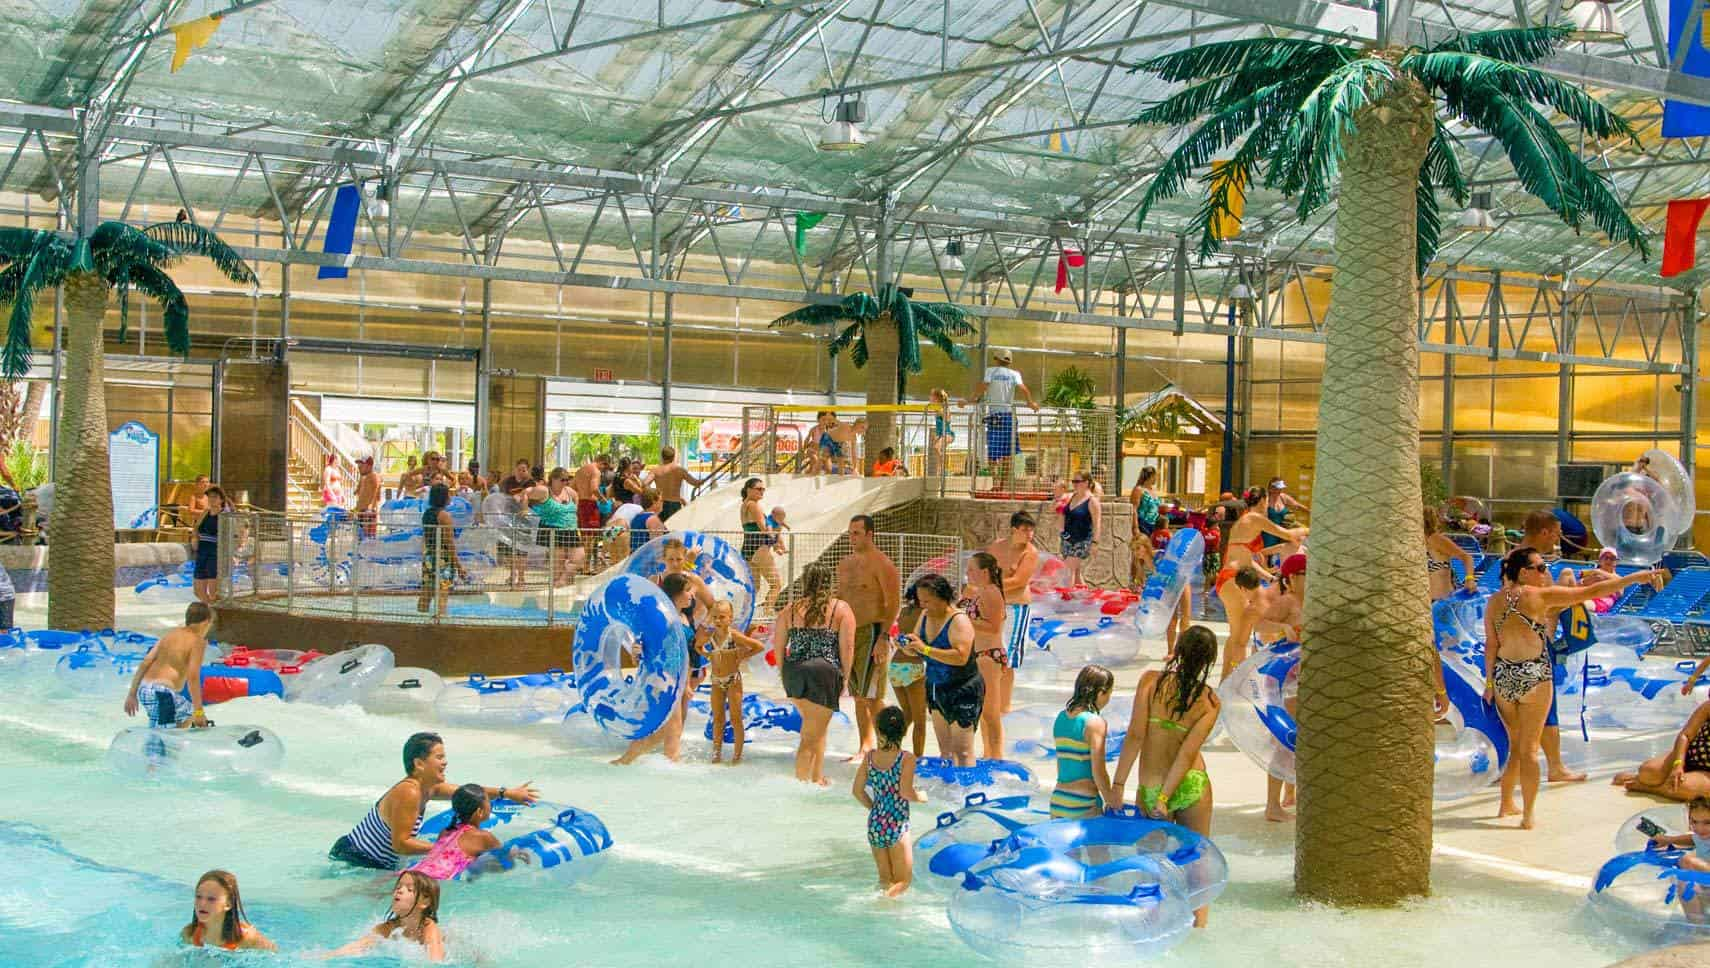 photo relating to Schlitterbahn Printable Coupons known as Schlitterbahn 2 working day coupon codes